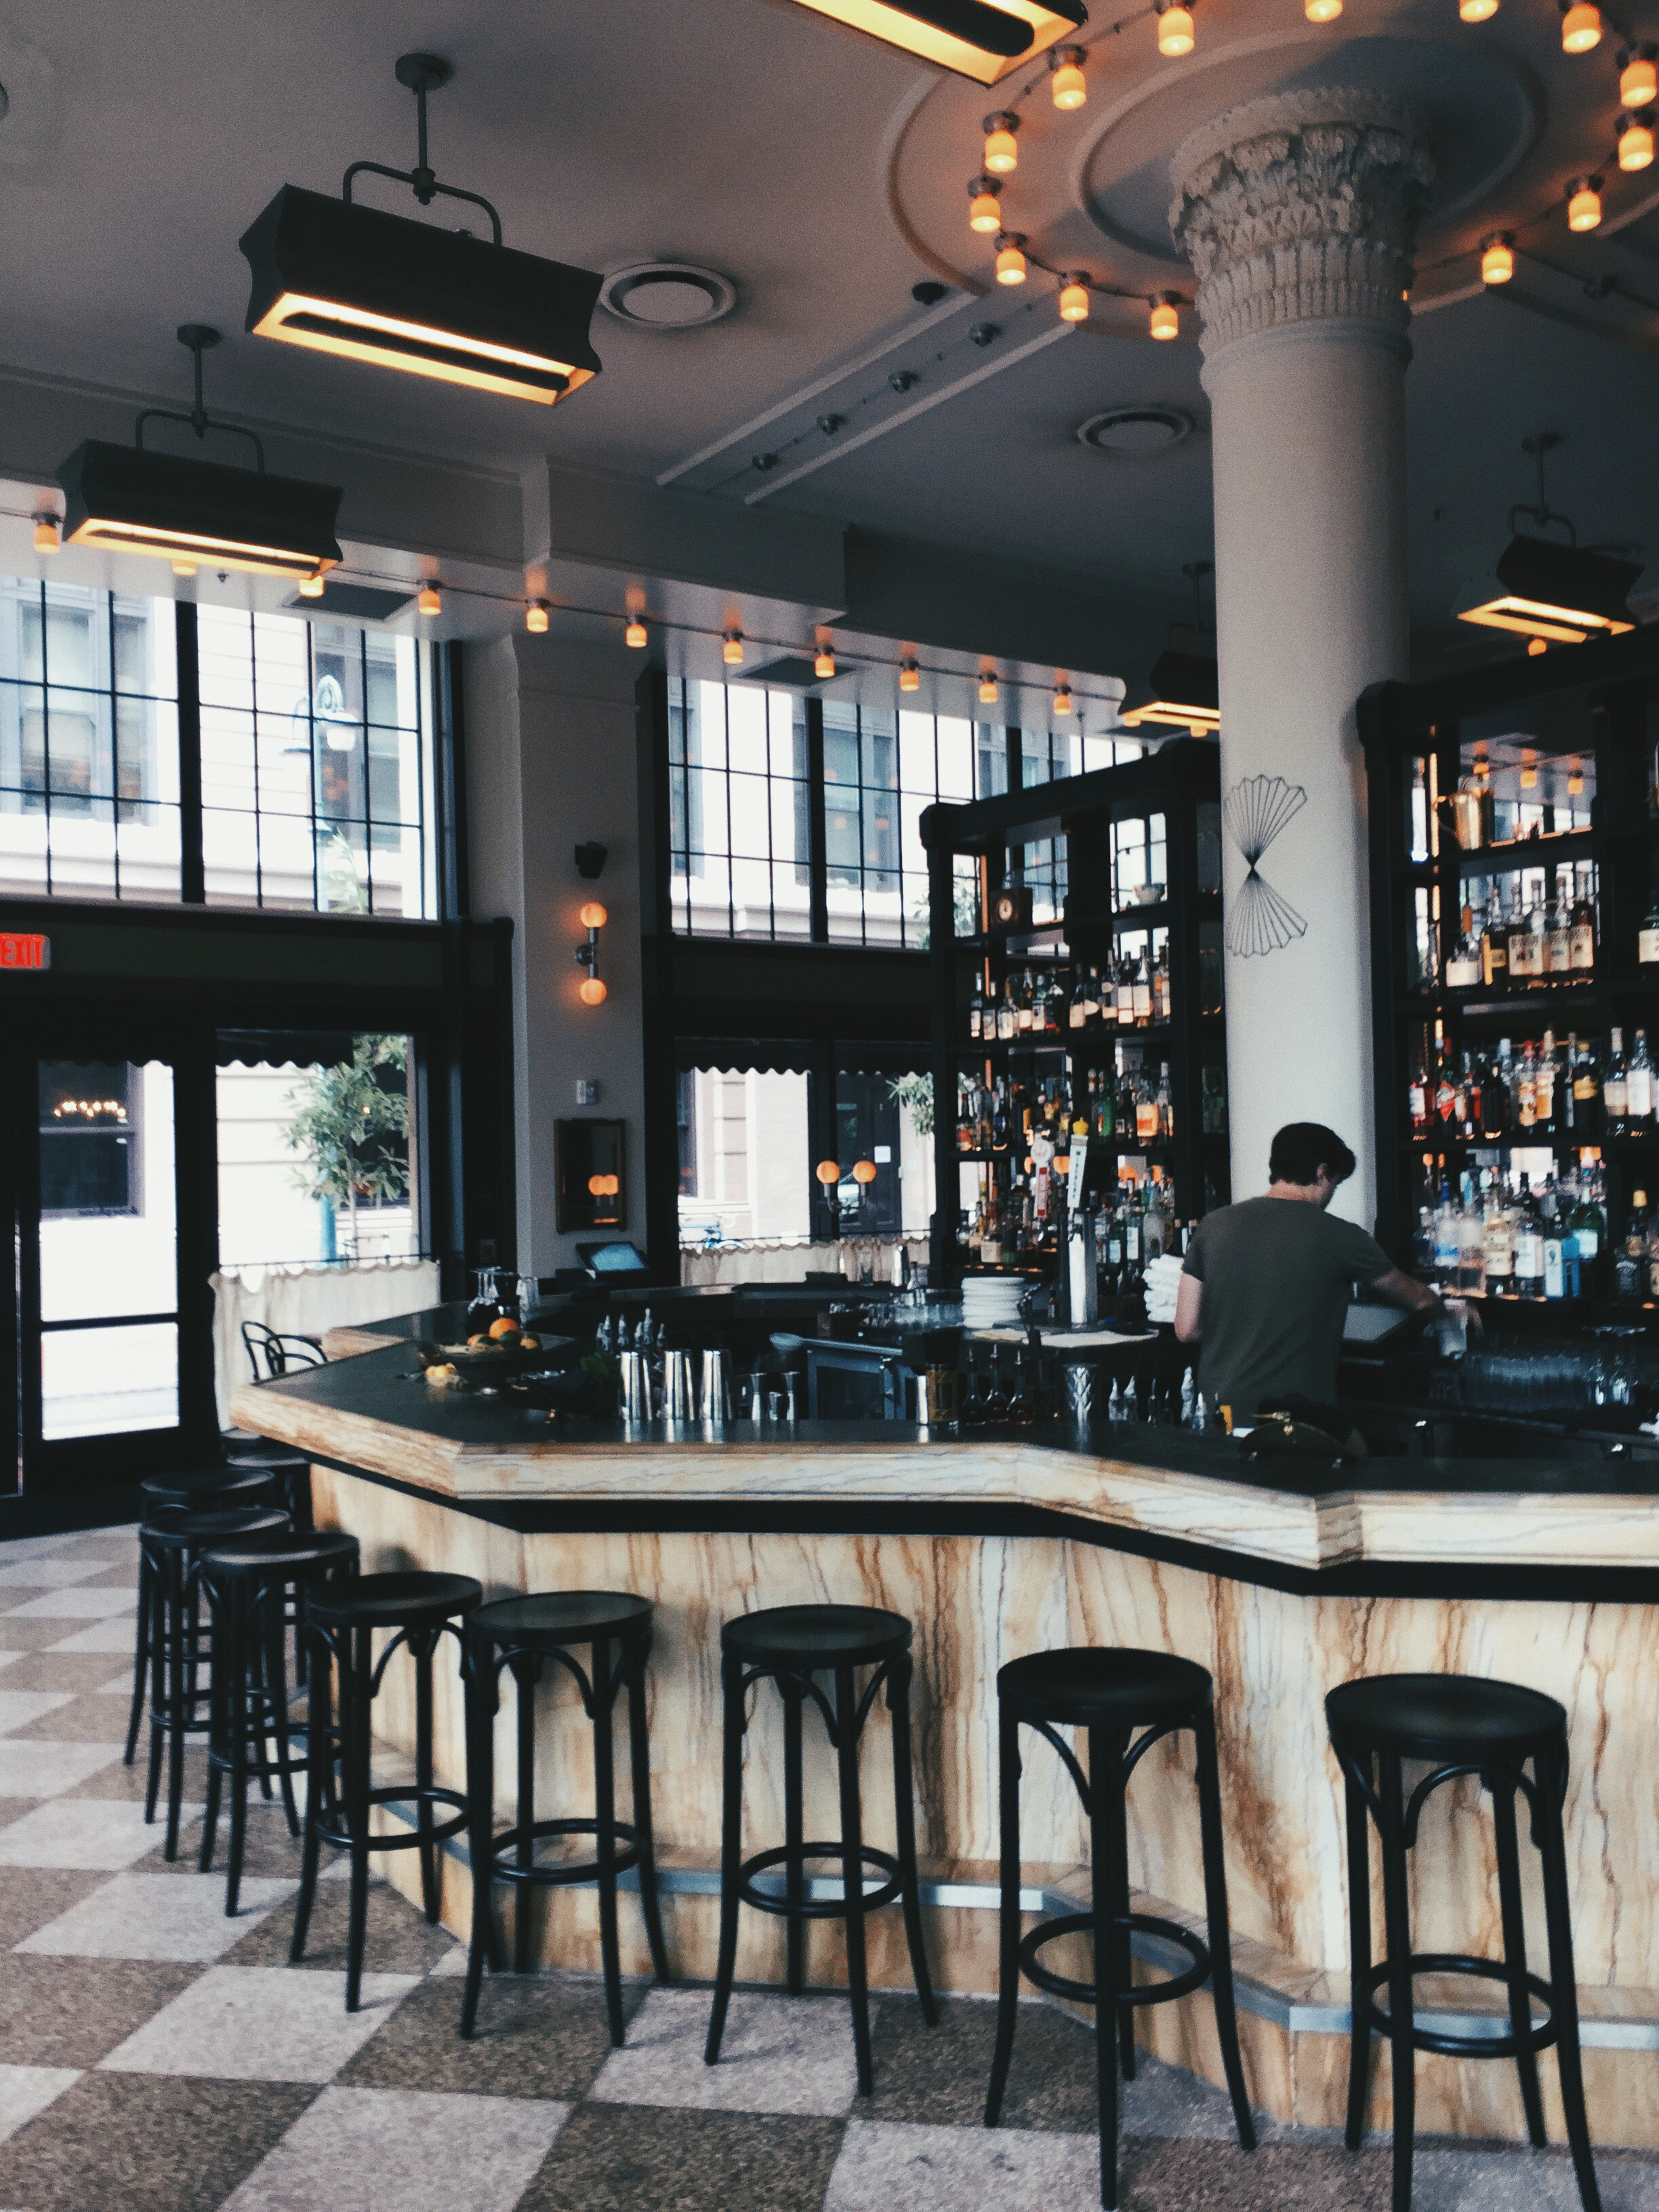 Of course I had to check out the Ace Hotel